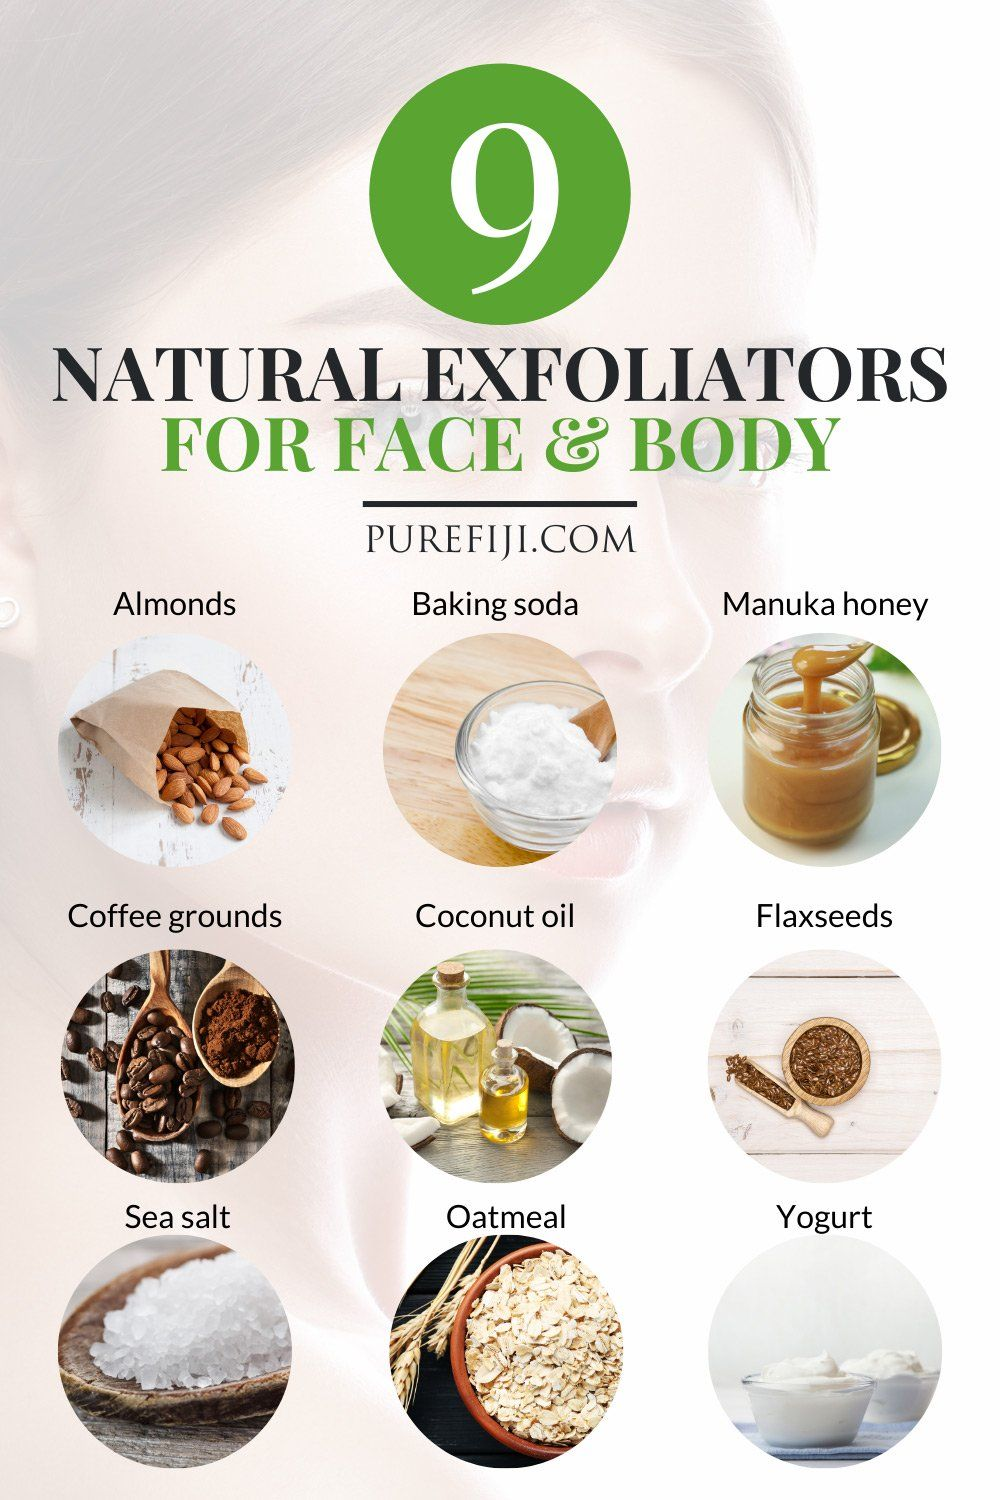 Top 9 Natural Exfoliators For Your Face And Body Includes Diy